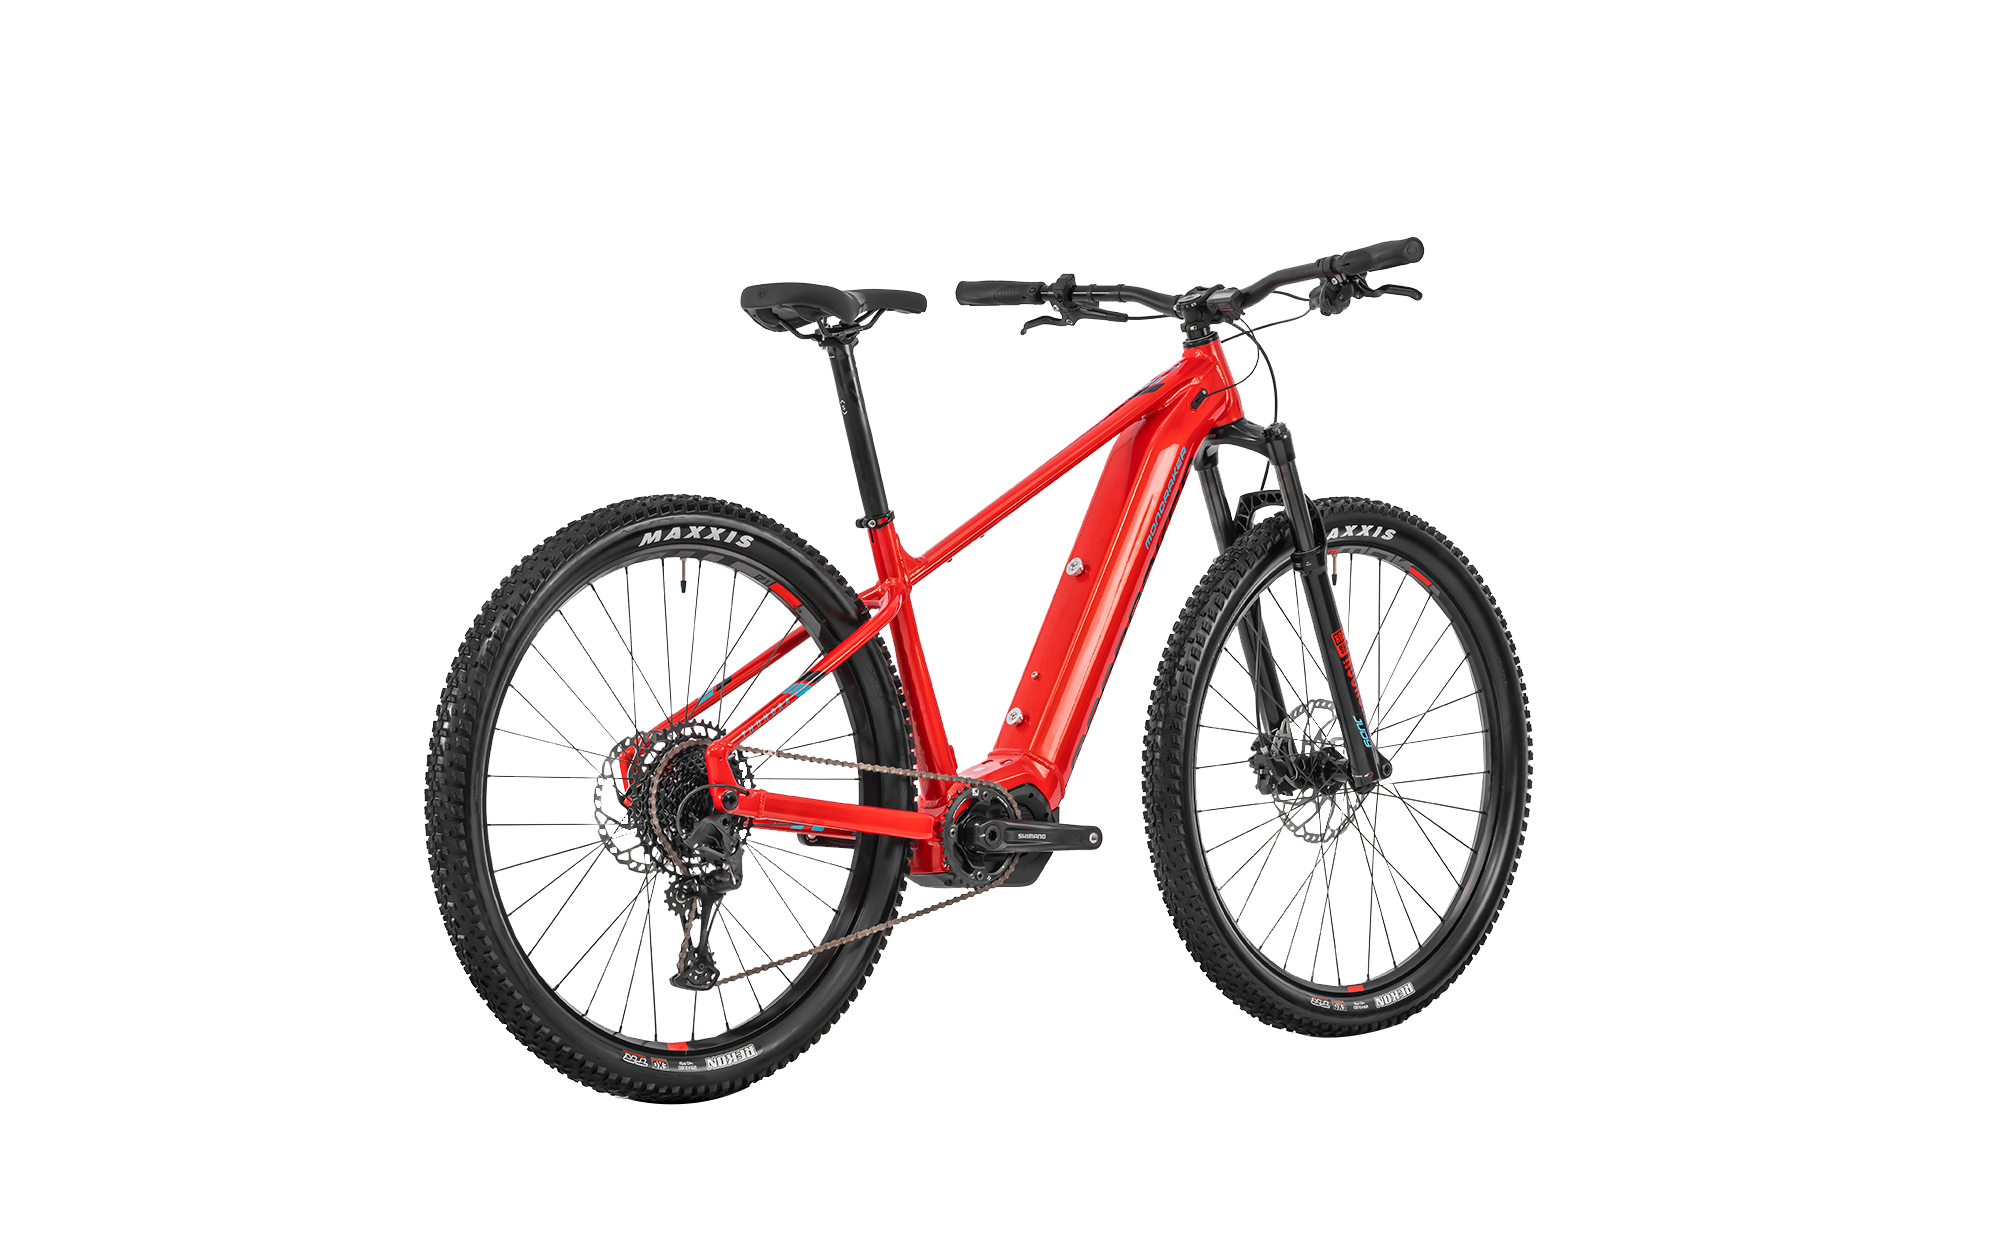 https://w8w5m3f8.stackpathcdn.com/17772-thickbox_extralarge/vtt-electrique-mondraker-thundra-630wh-275.jpg